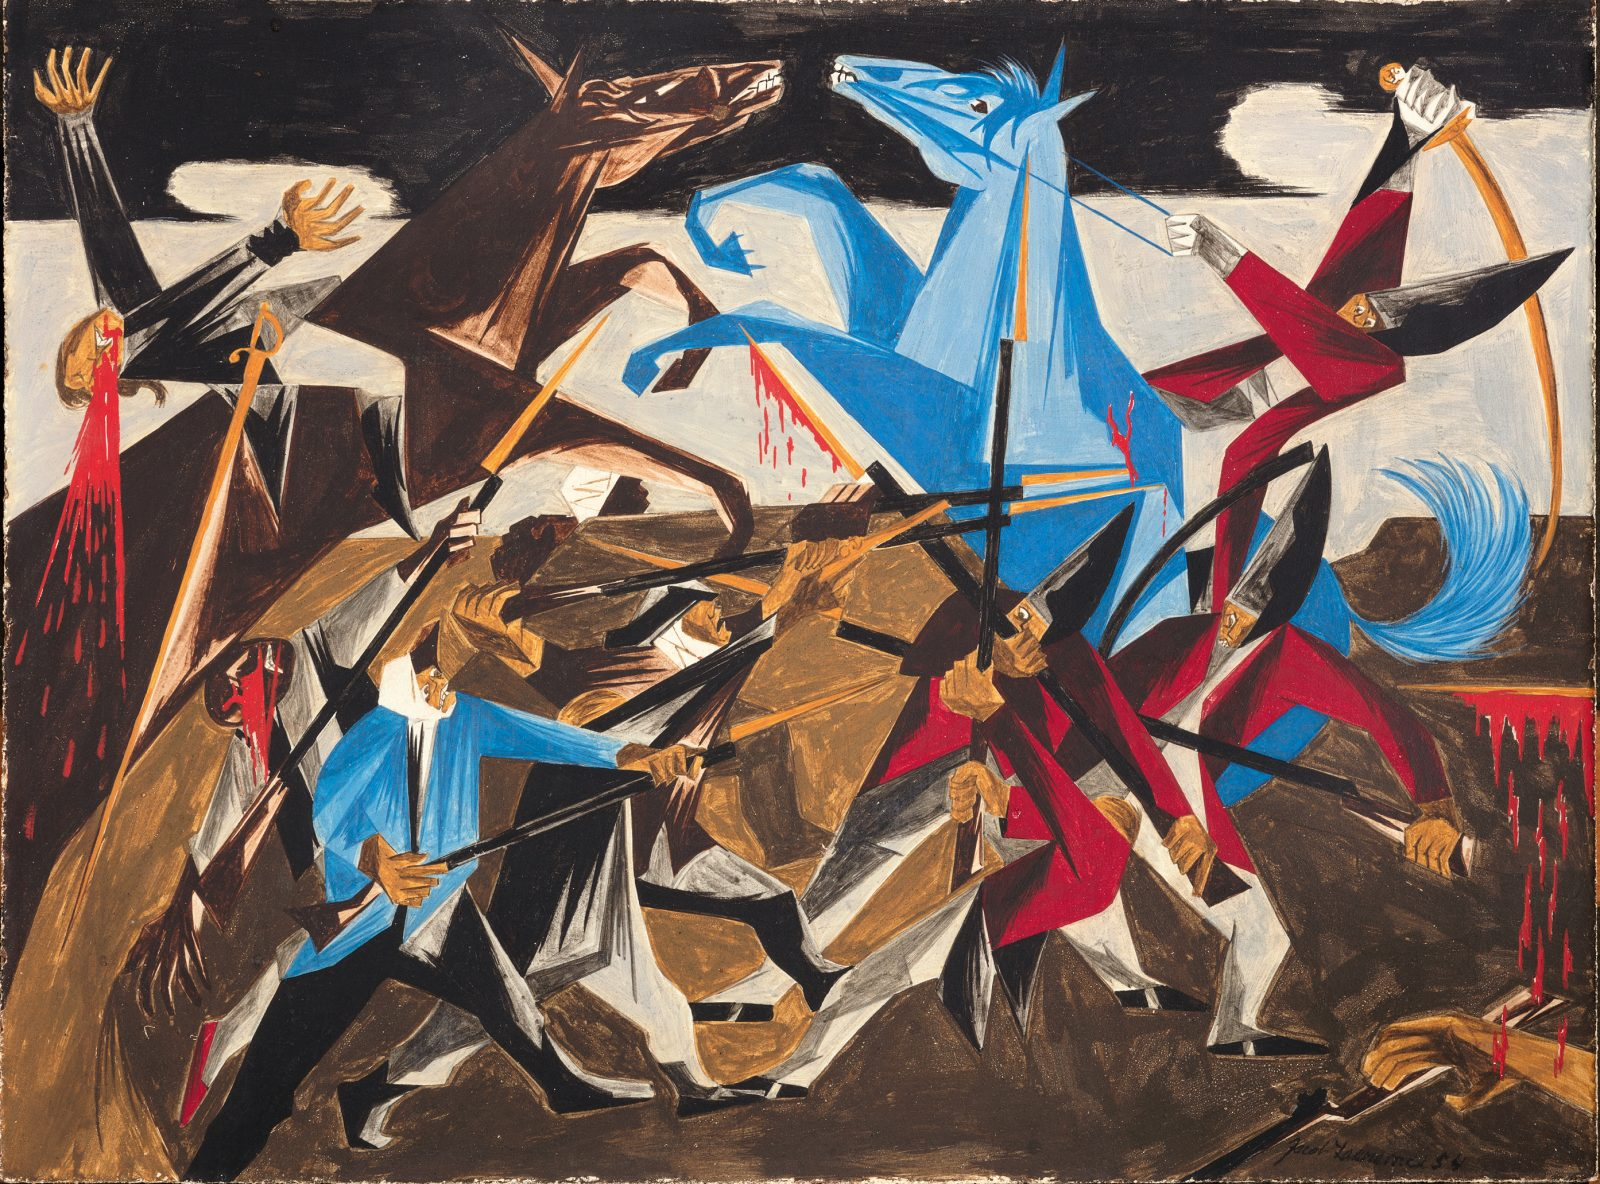 """Jacob Lawrence, ' . . . again the rebels rushed furiously on our men. —a Hessian soldier,.' Panel 8, 1954, from """"Struggle: From the History of the American People,"""" 1954–56, egg tempera on hardboard. Collection of Harvey and Harvey-Ann Ross. © The Jacob and Gwendolyn Knight Lawrence Foundation, Seattle/Artists Rights Society (ARS), New York. Photography by Bob Packert/PEM"""